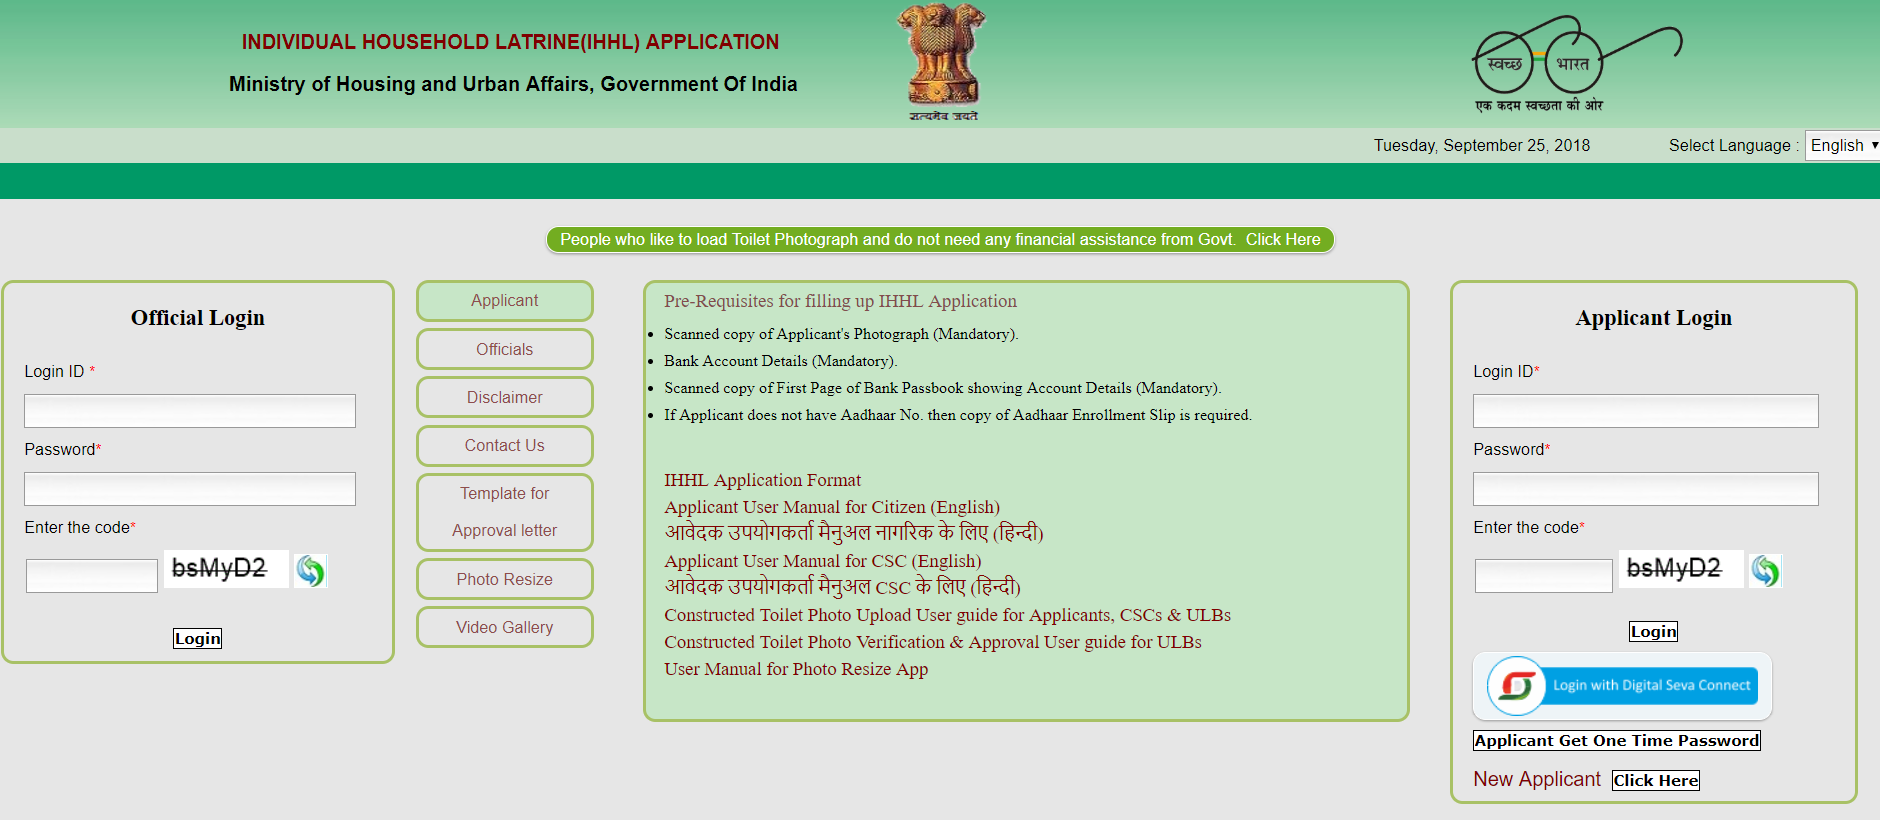 Apply For Swachh Bharat Abhiyan Toilet Online